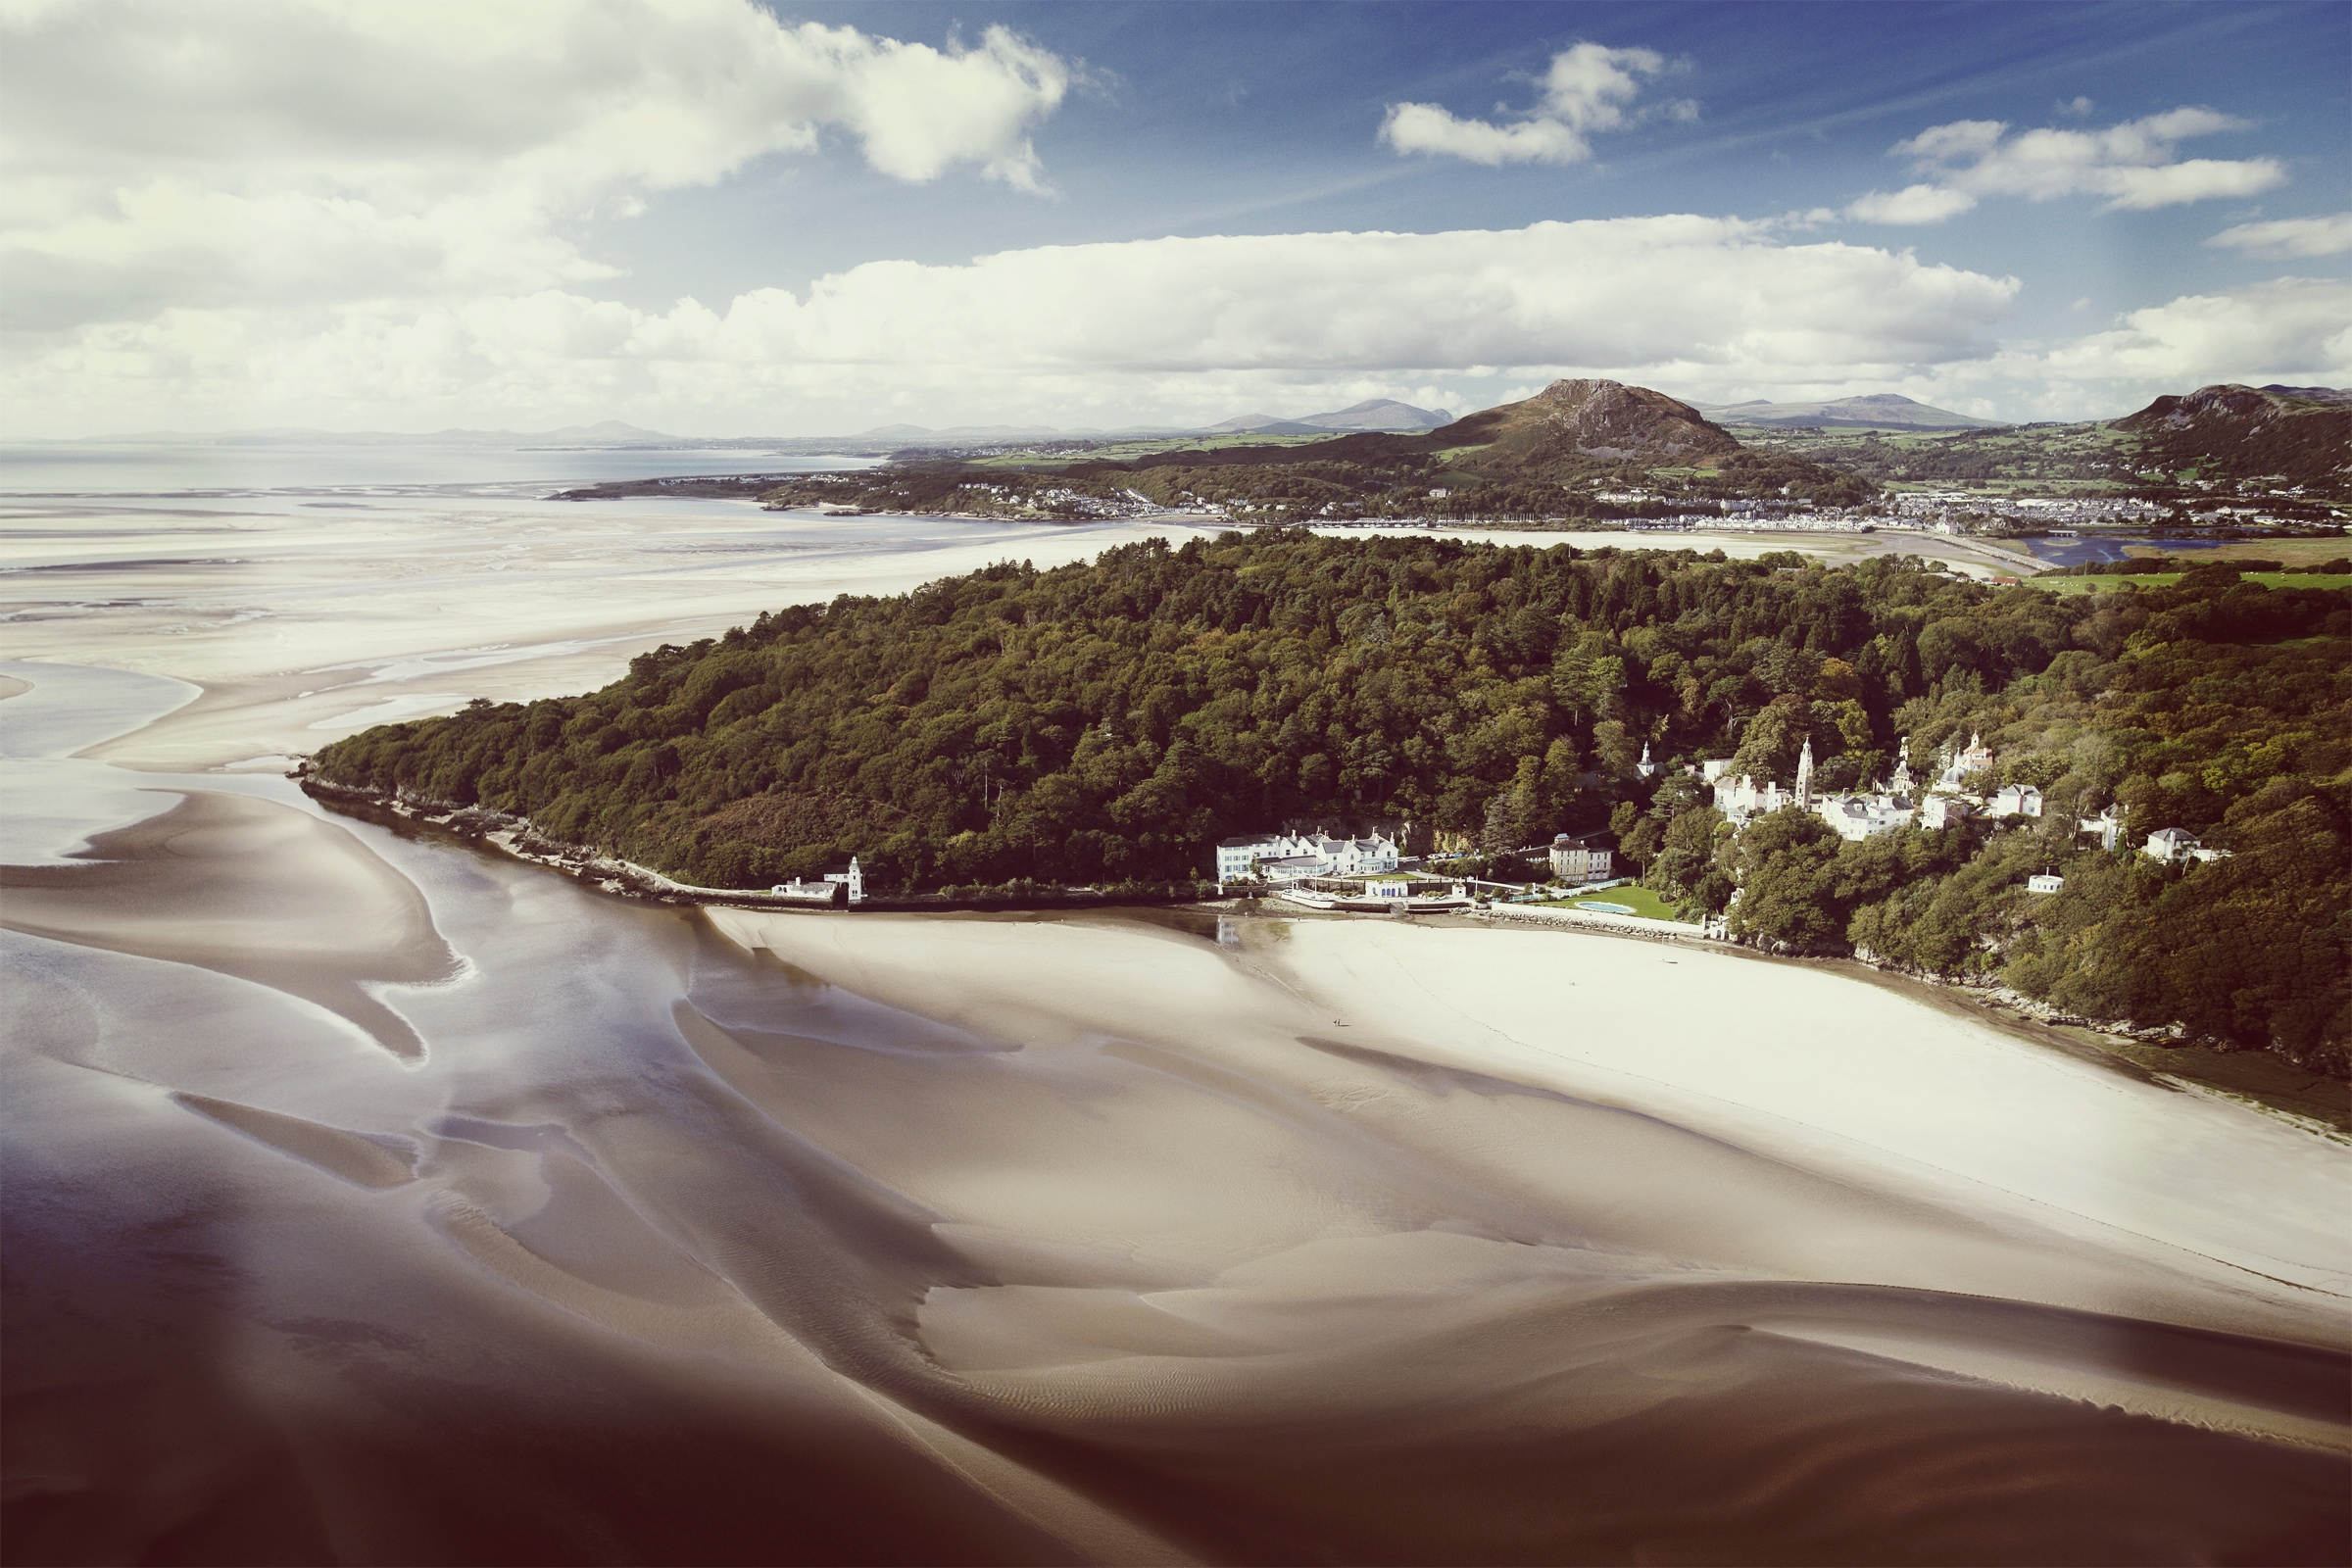 The sweeping coastline in Portmeirion (Picture: Festival No. 6)